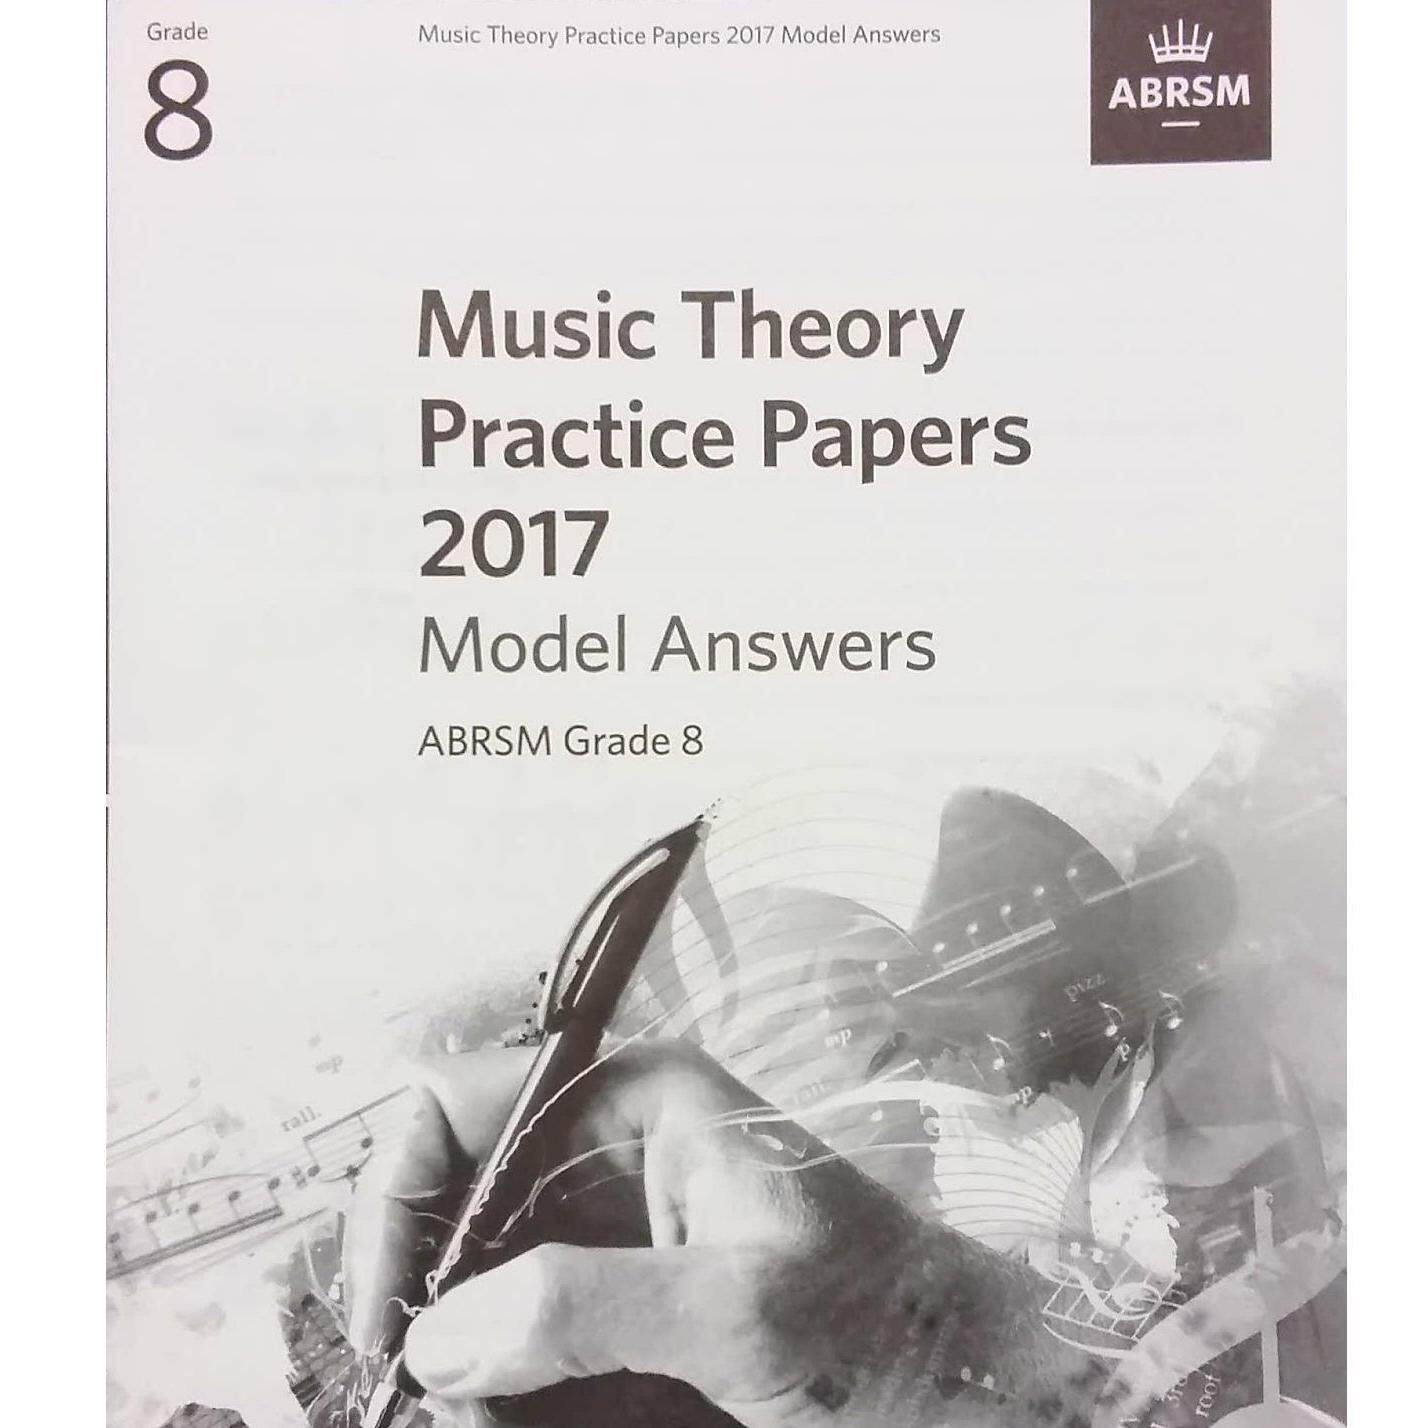 ABRSM Music Theory Practice Papers Model Answers 2017 Grade 8